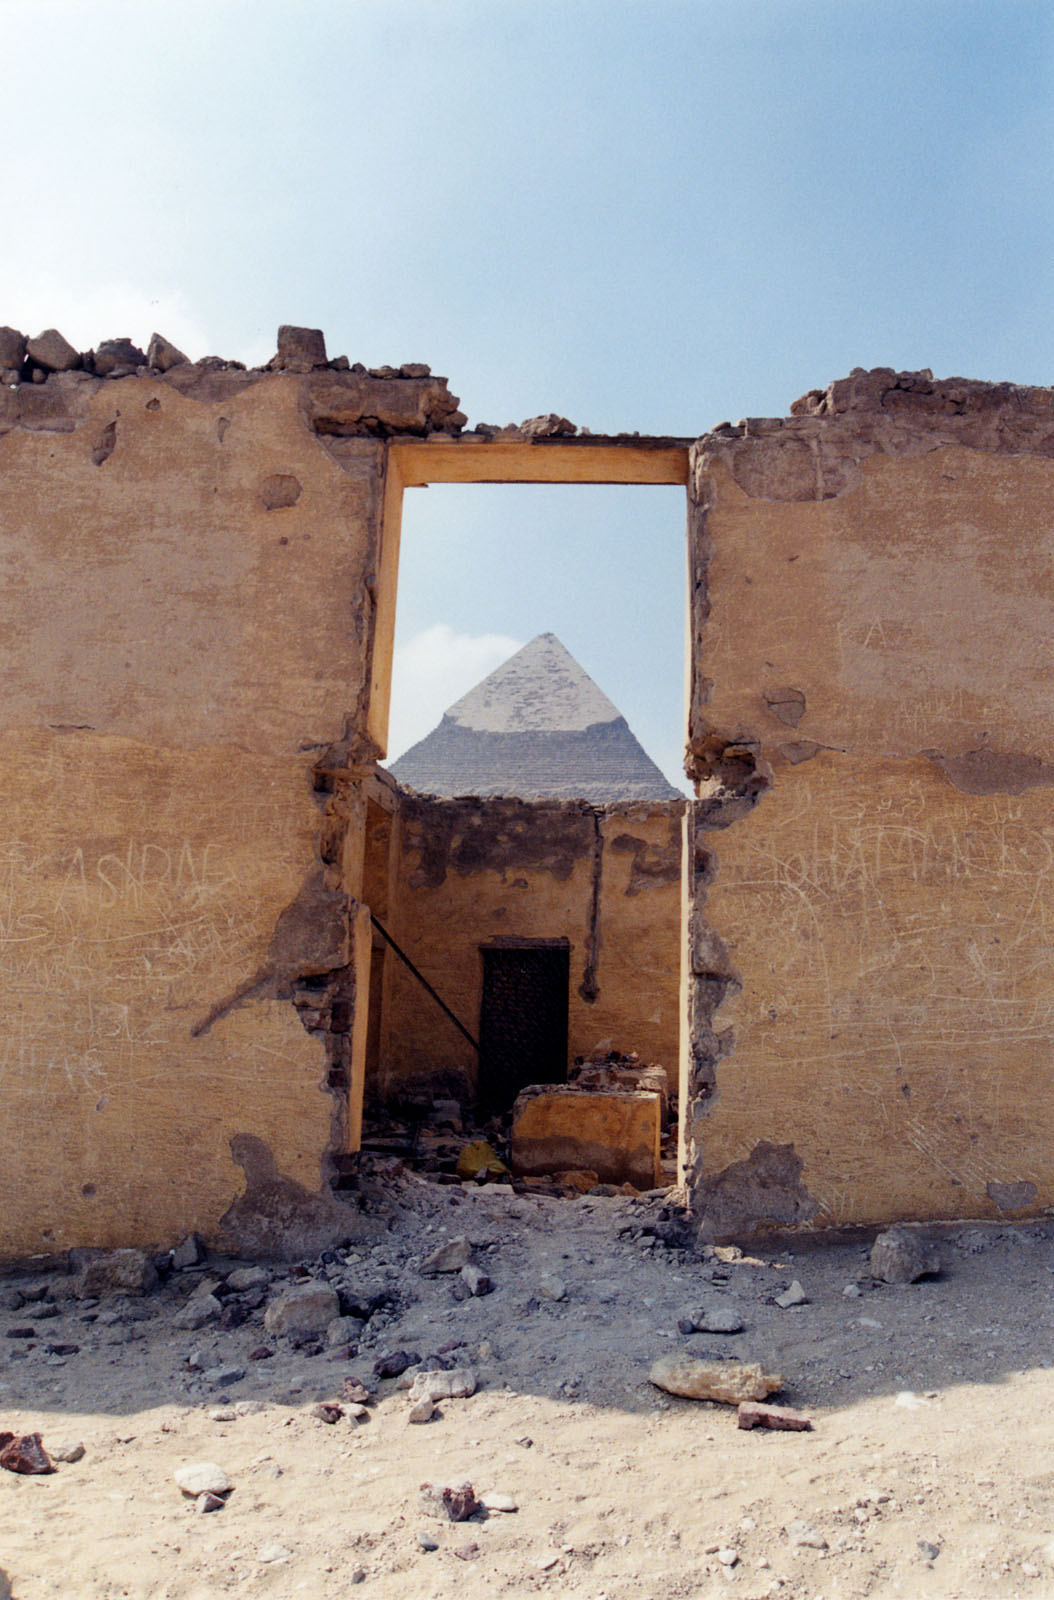 Western Cemetery: Site: Giza; View: Junker house, Khafre pyramid